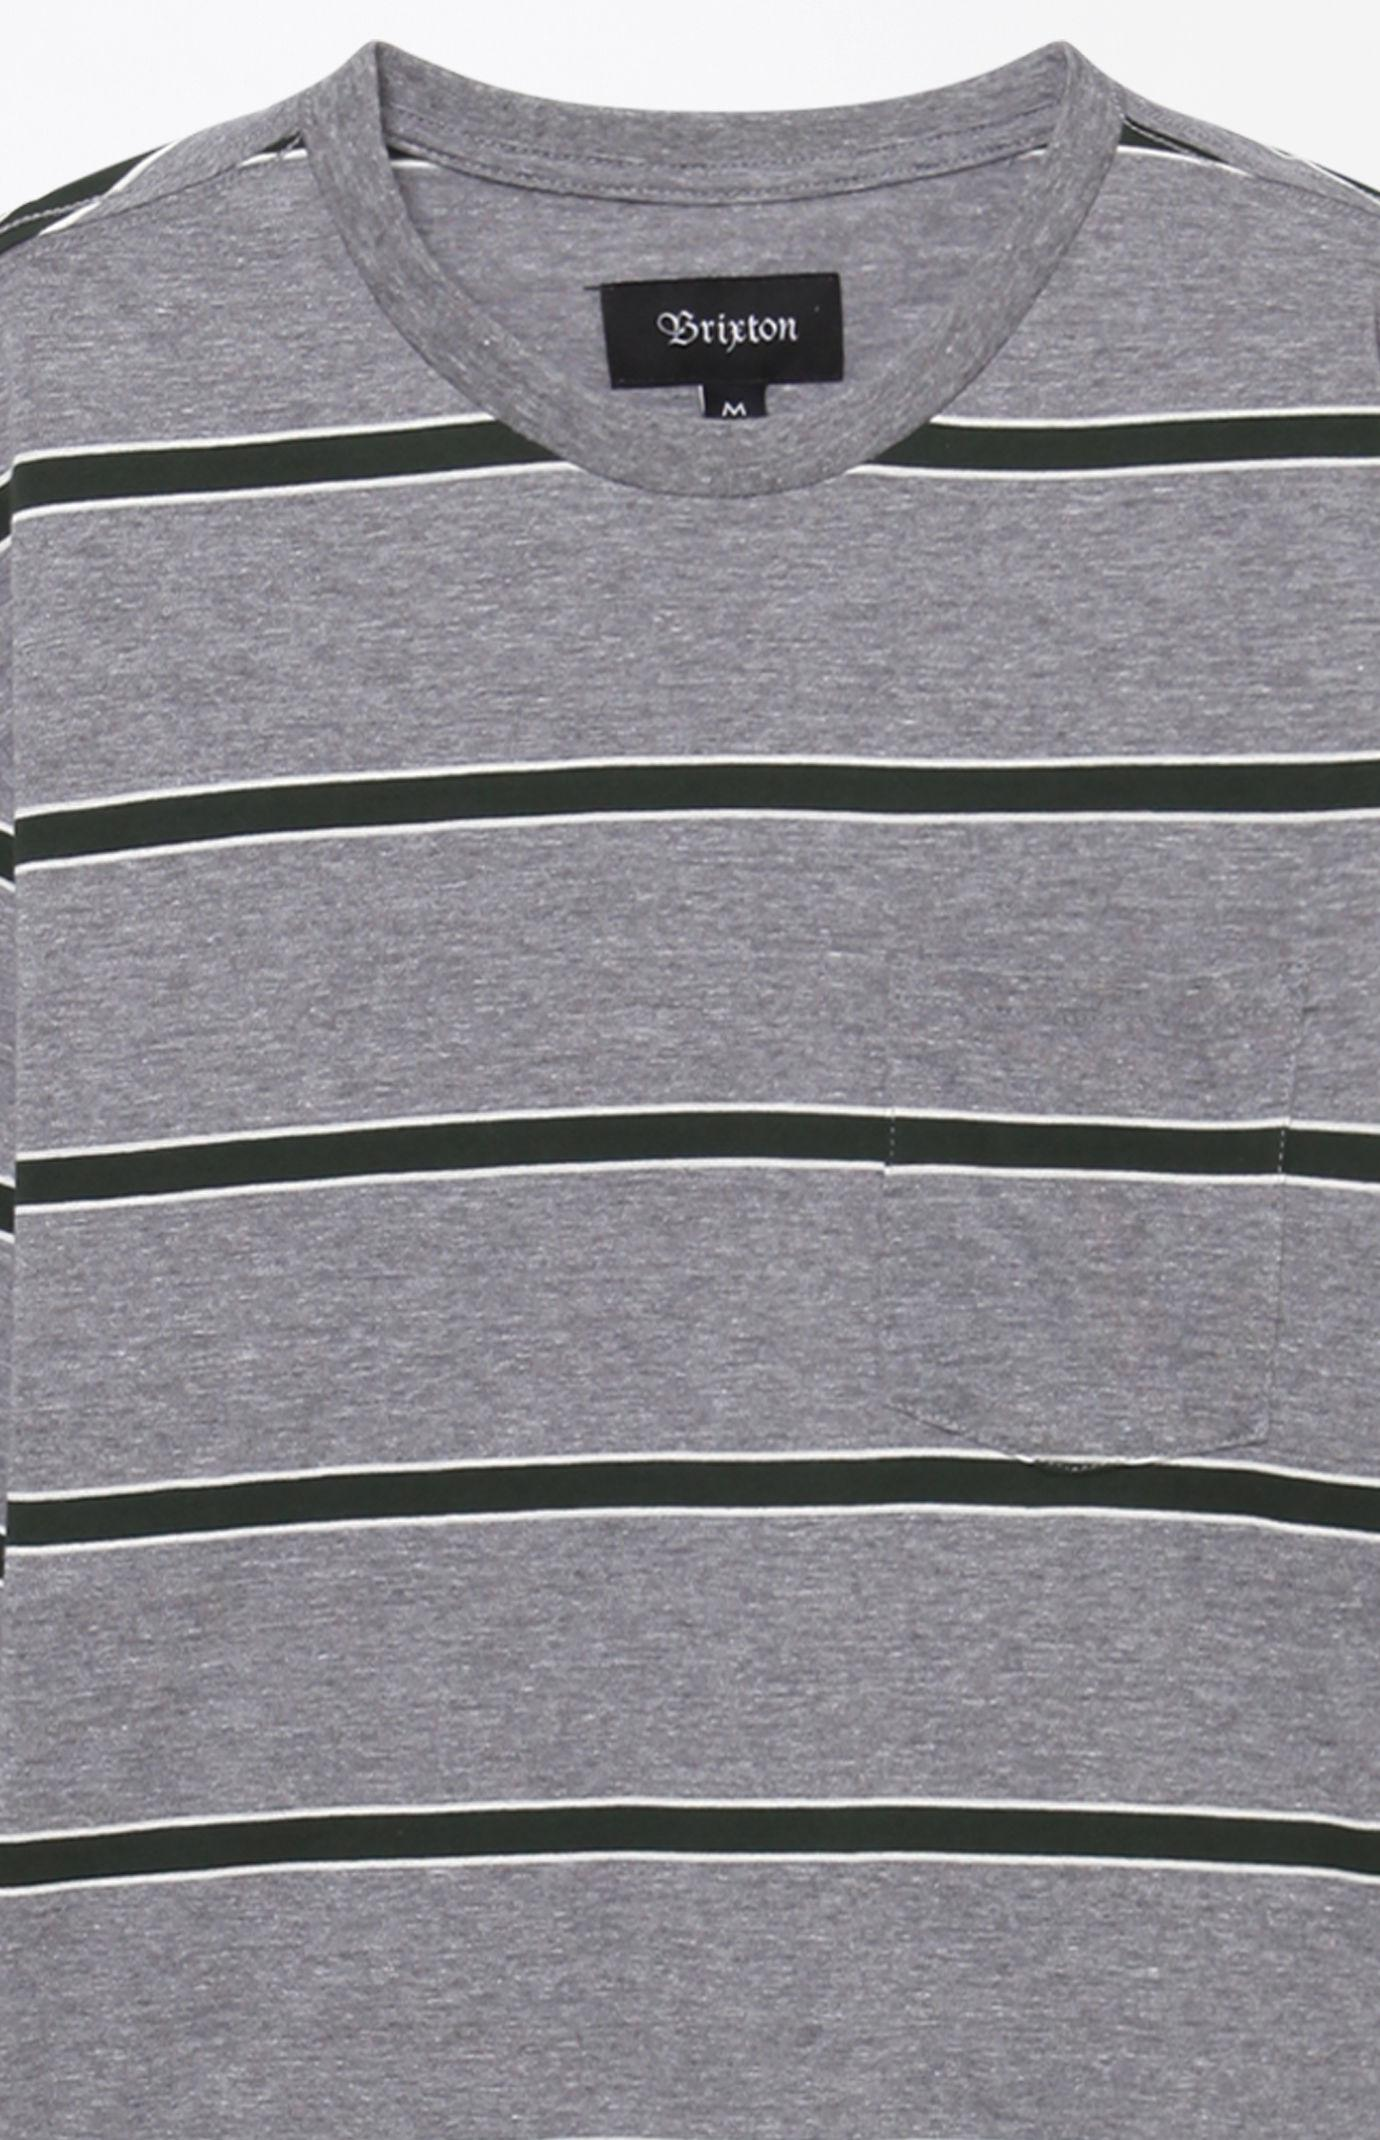 2fd4d0878a Lyst - Brixton Hilt Washed Stripe Grey Long Sleeve T-shirt in Gray ...